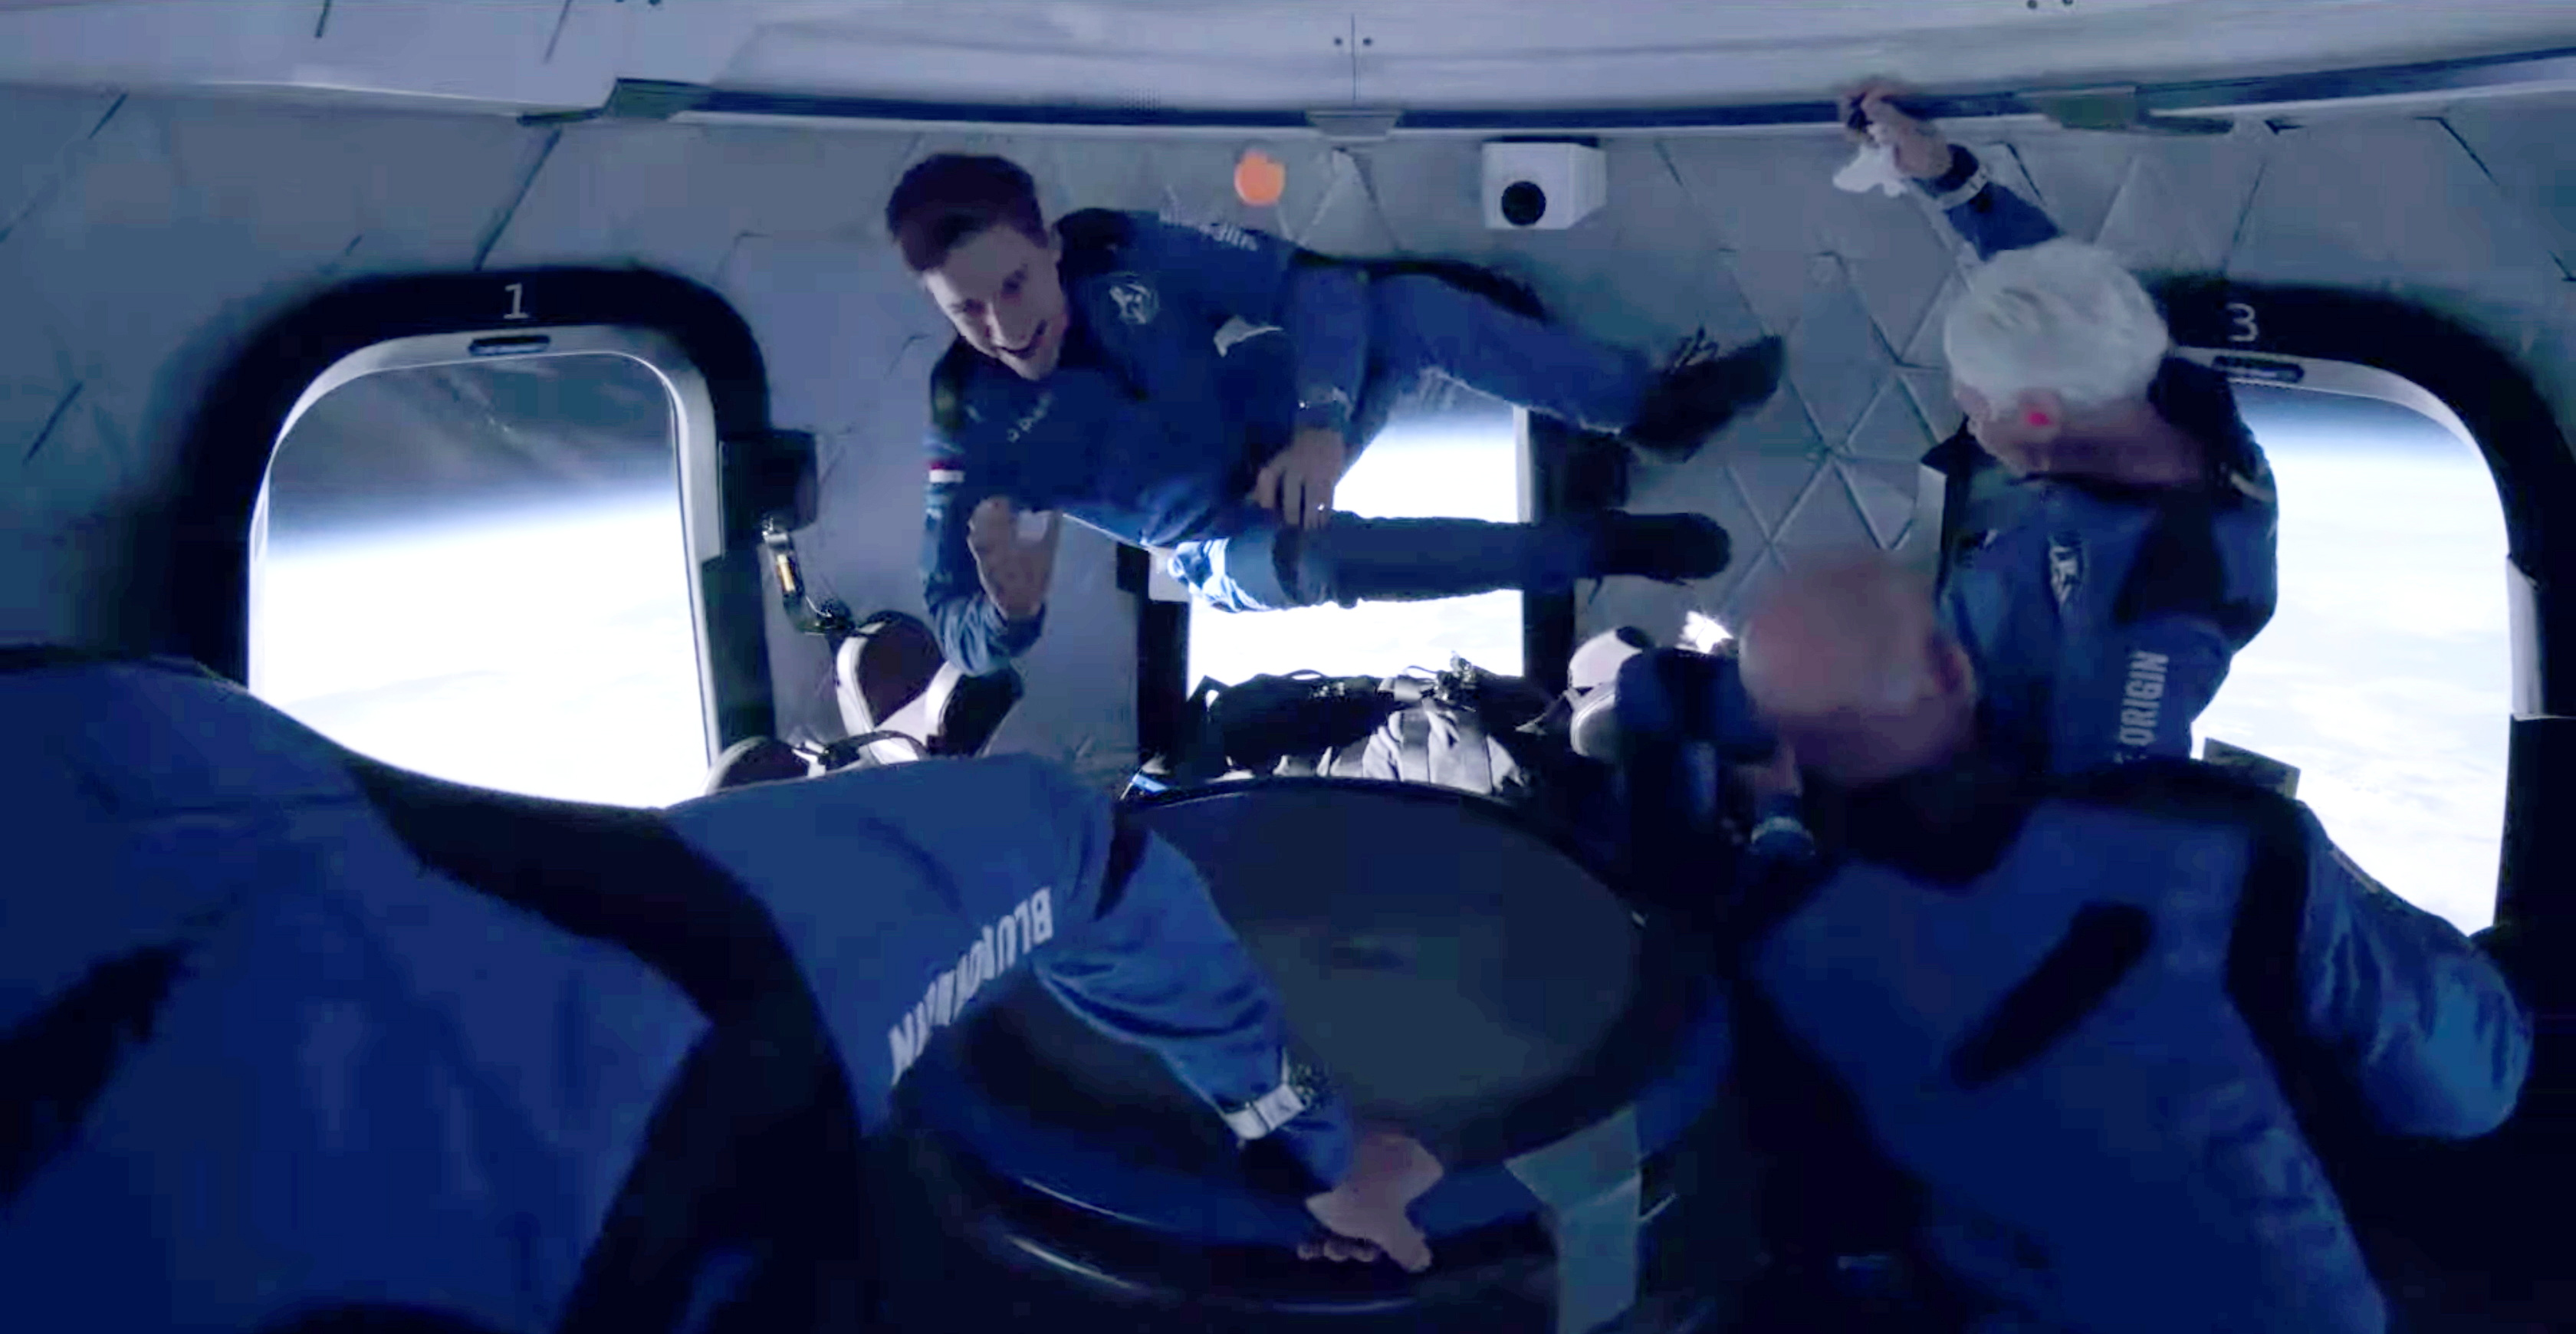 Recent Dutch high school graduate Oliver Daemen and pioneering female aviator Wally Funk float weightlessly in their capsule with billionaire businessman Jeff Bezos and his brother Mark after ascending in sub-orbital flight aboard Blue Origin's New Shepard rocket over Van Horn, Texas, U.S., July 20, 2021 in a still image from video.  Blue Origin/Handout via REUTERS.